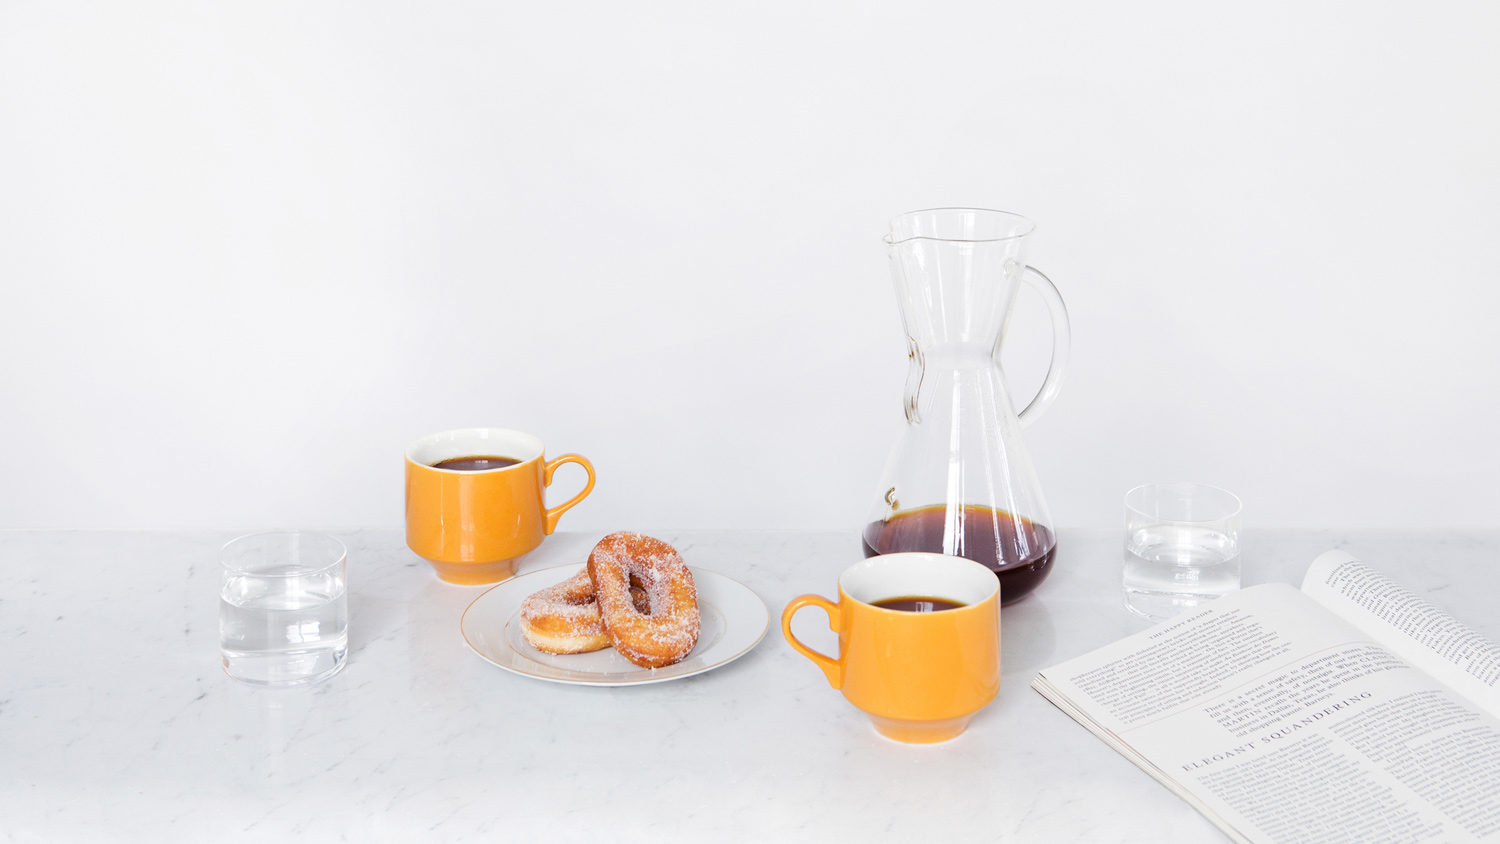 Art direction and set design by Cindy Boyce for New York coffee subscription service Collected Coffee